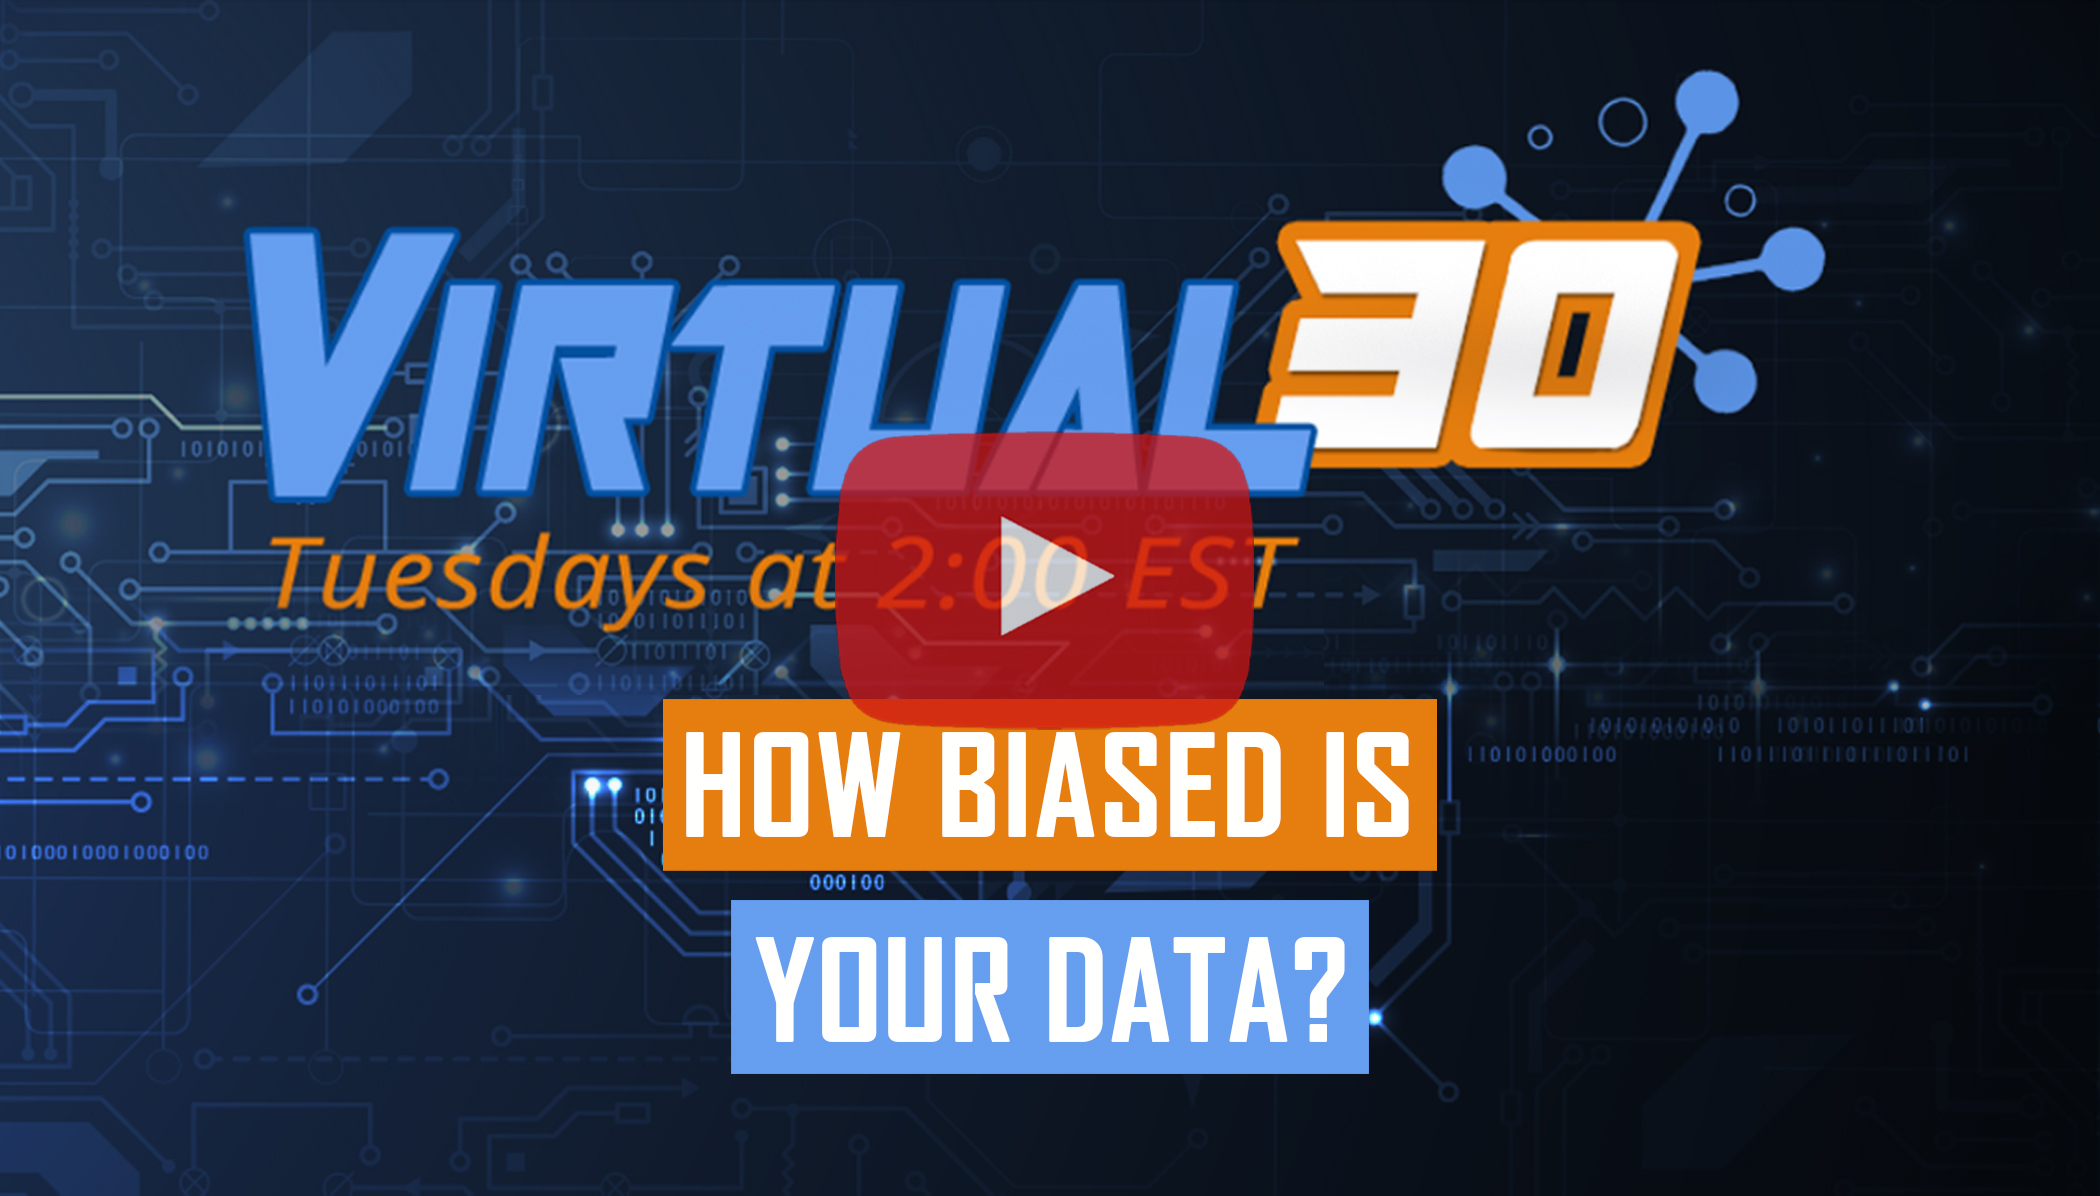 Webinar explaing what Data Bias is and How to Prevent it